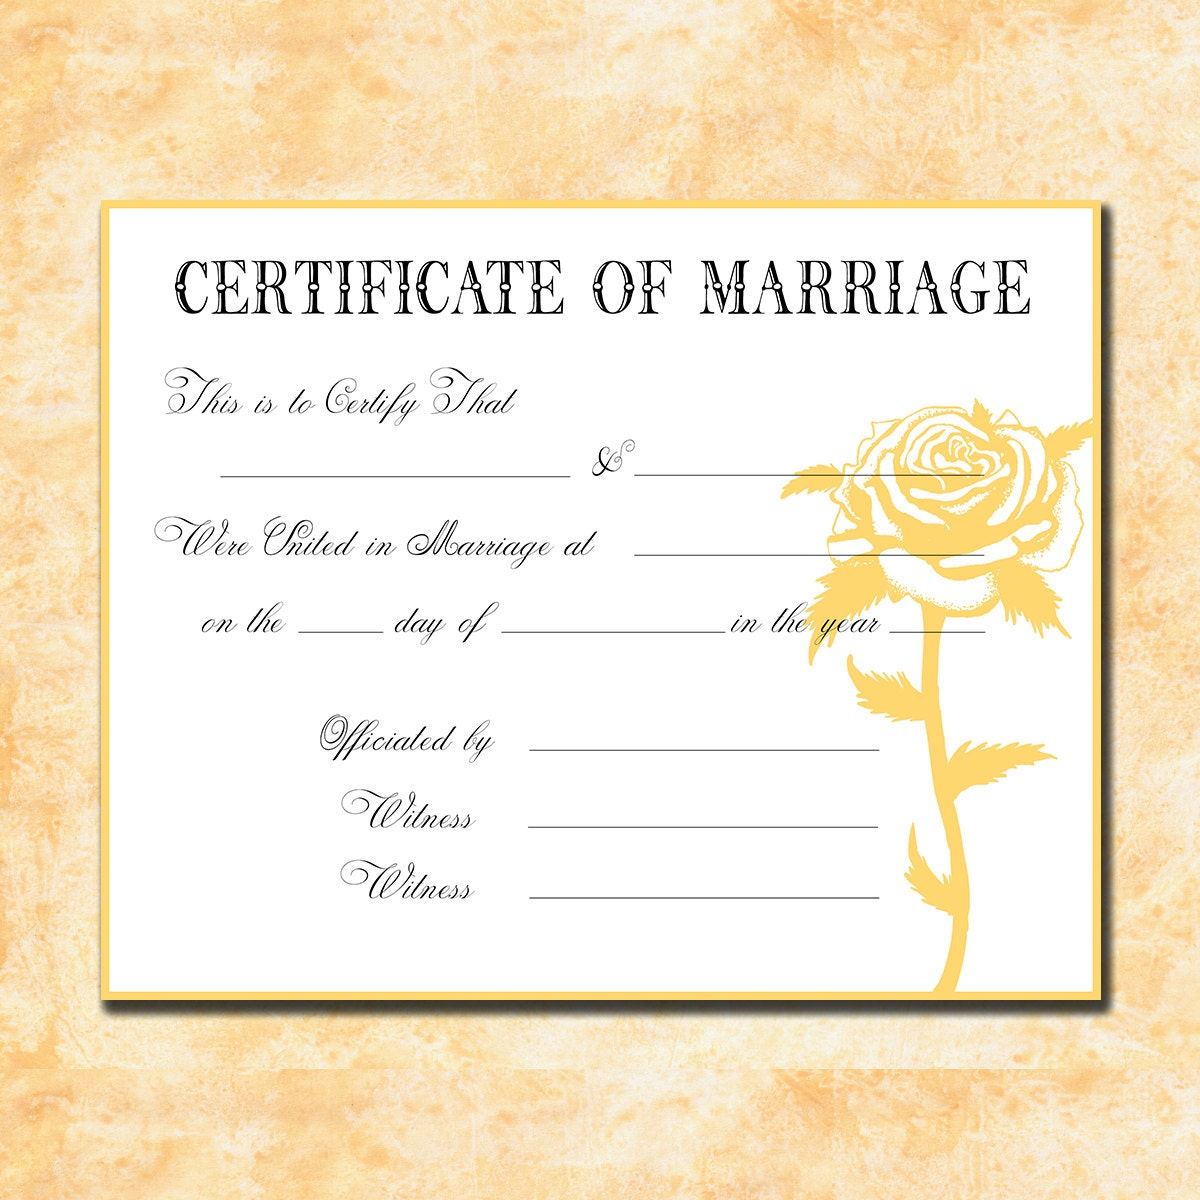 Marriage Records: Keepsake Marriage Certificate Faded Yellow By